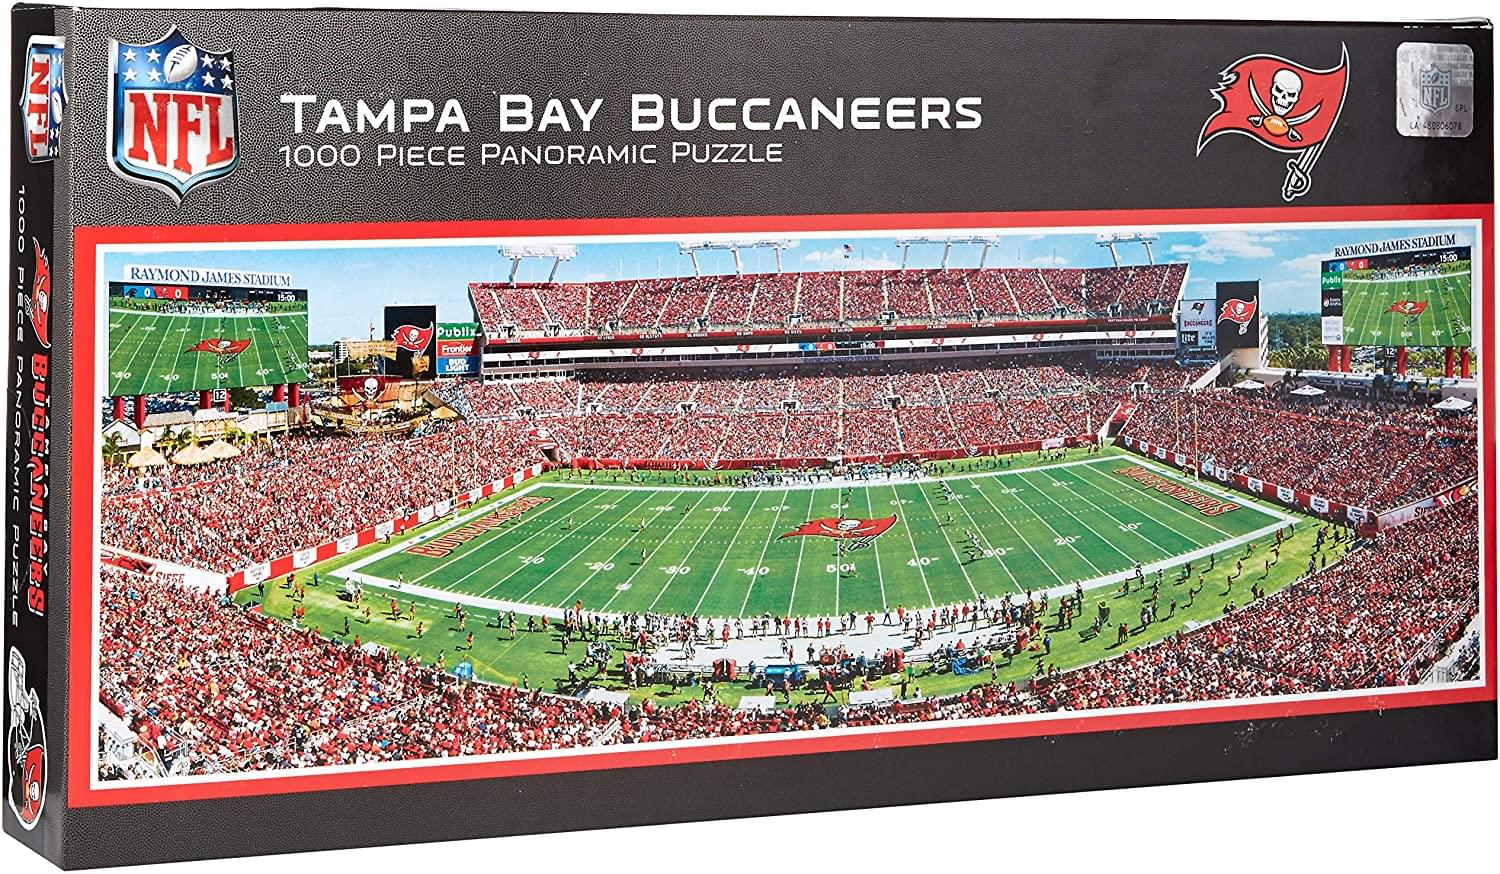 Tampa Bay Buccaneers Stadium NFL 1000 Piece Panoramic Jigsaw Puzzle